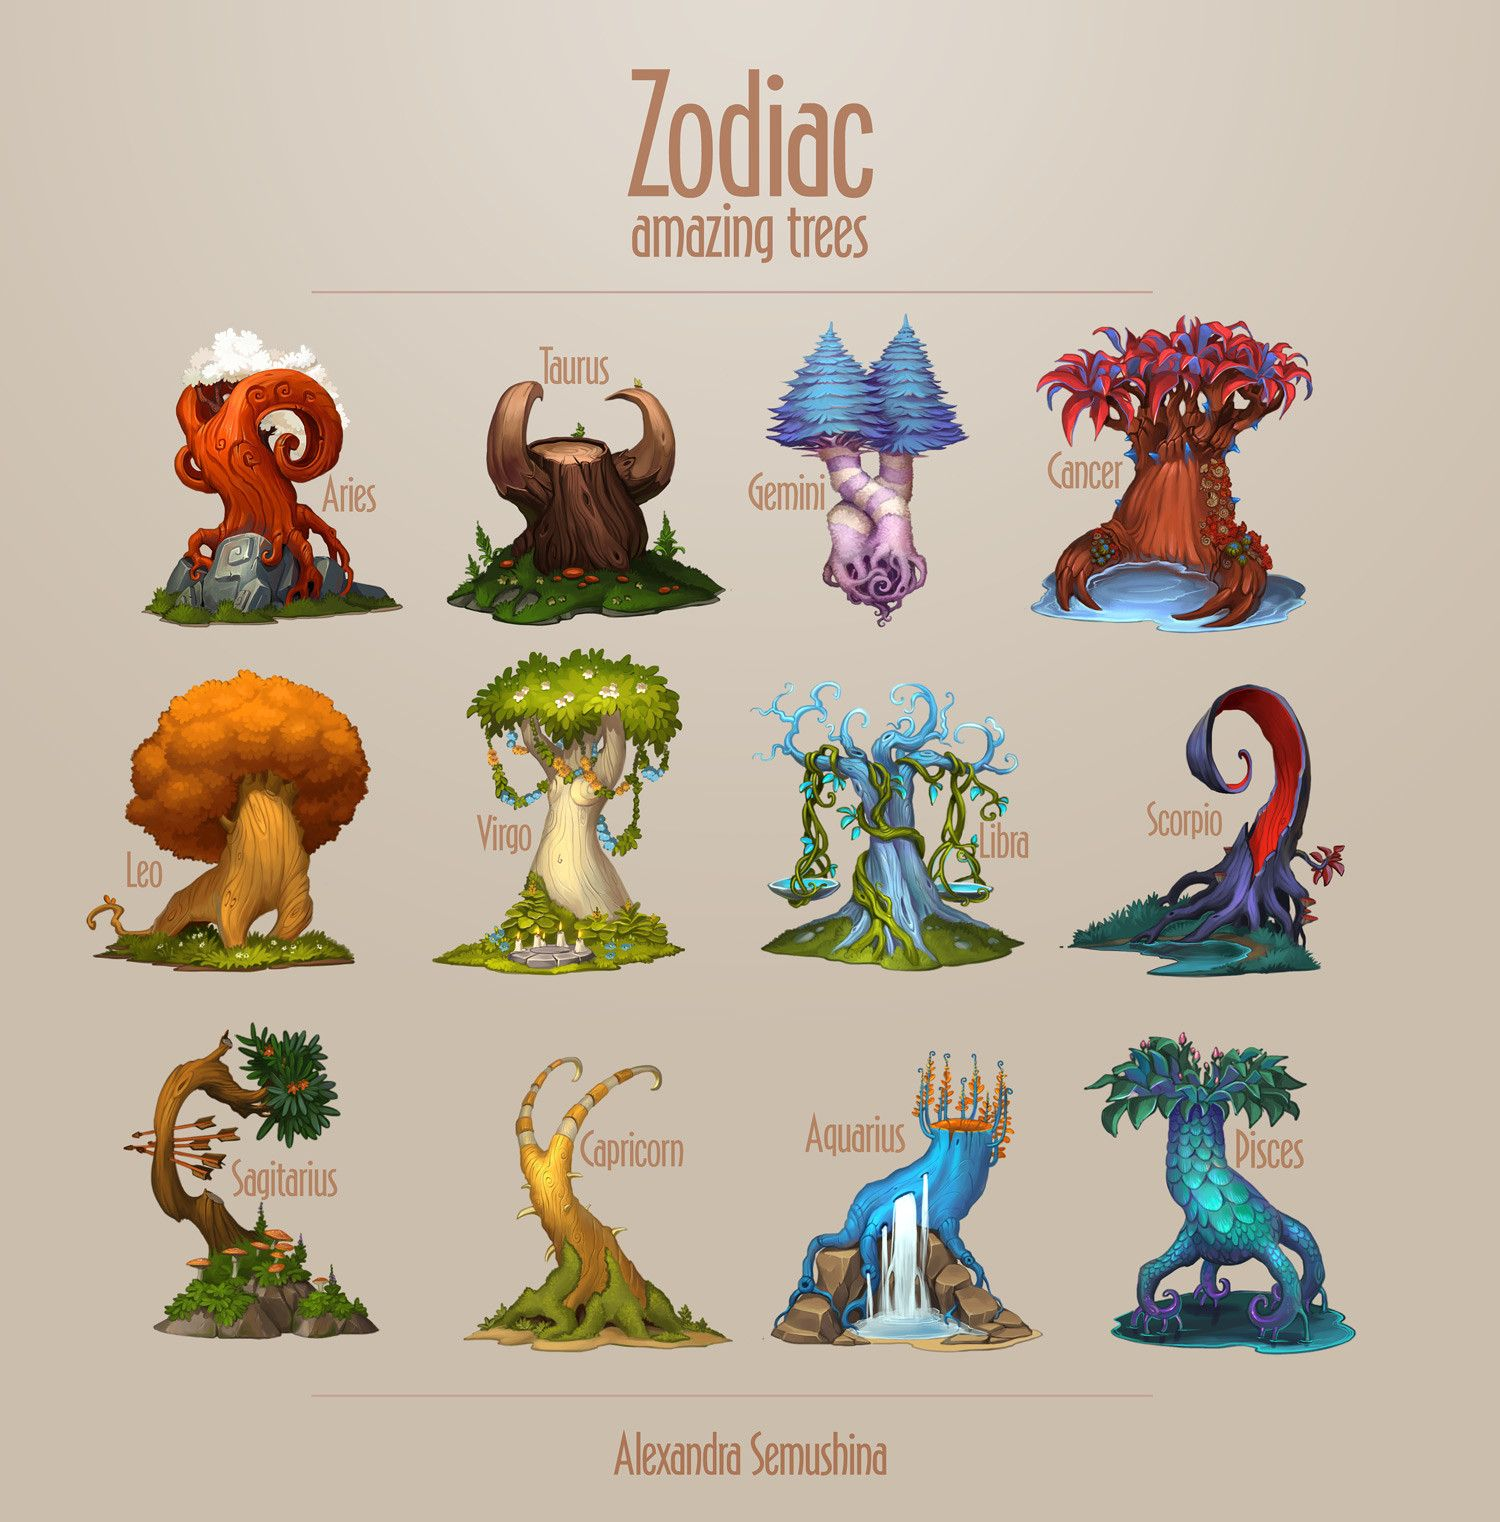 Trees by the zodiac signs. Interesting for Cancers